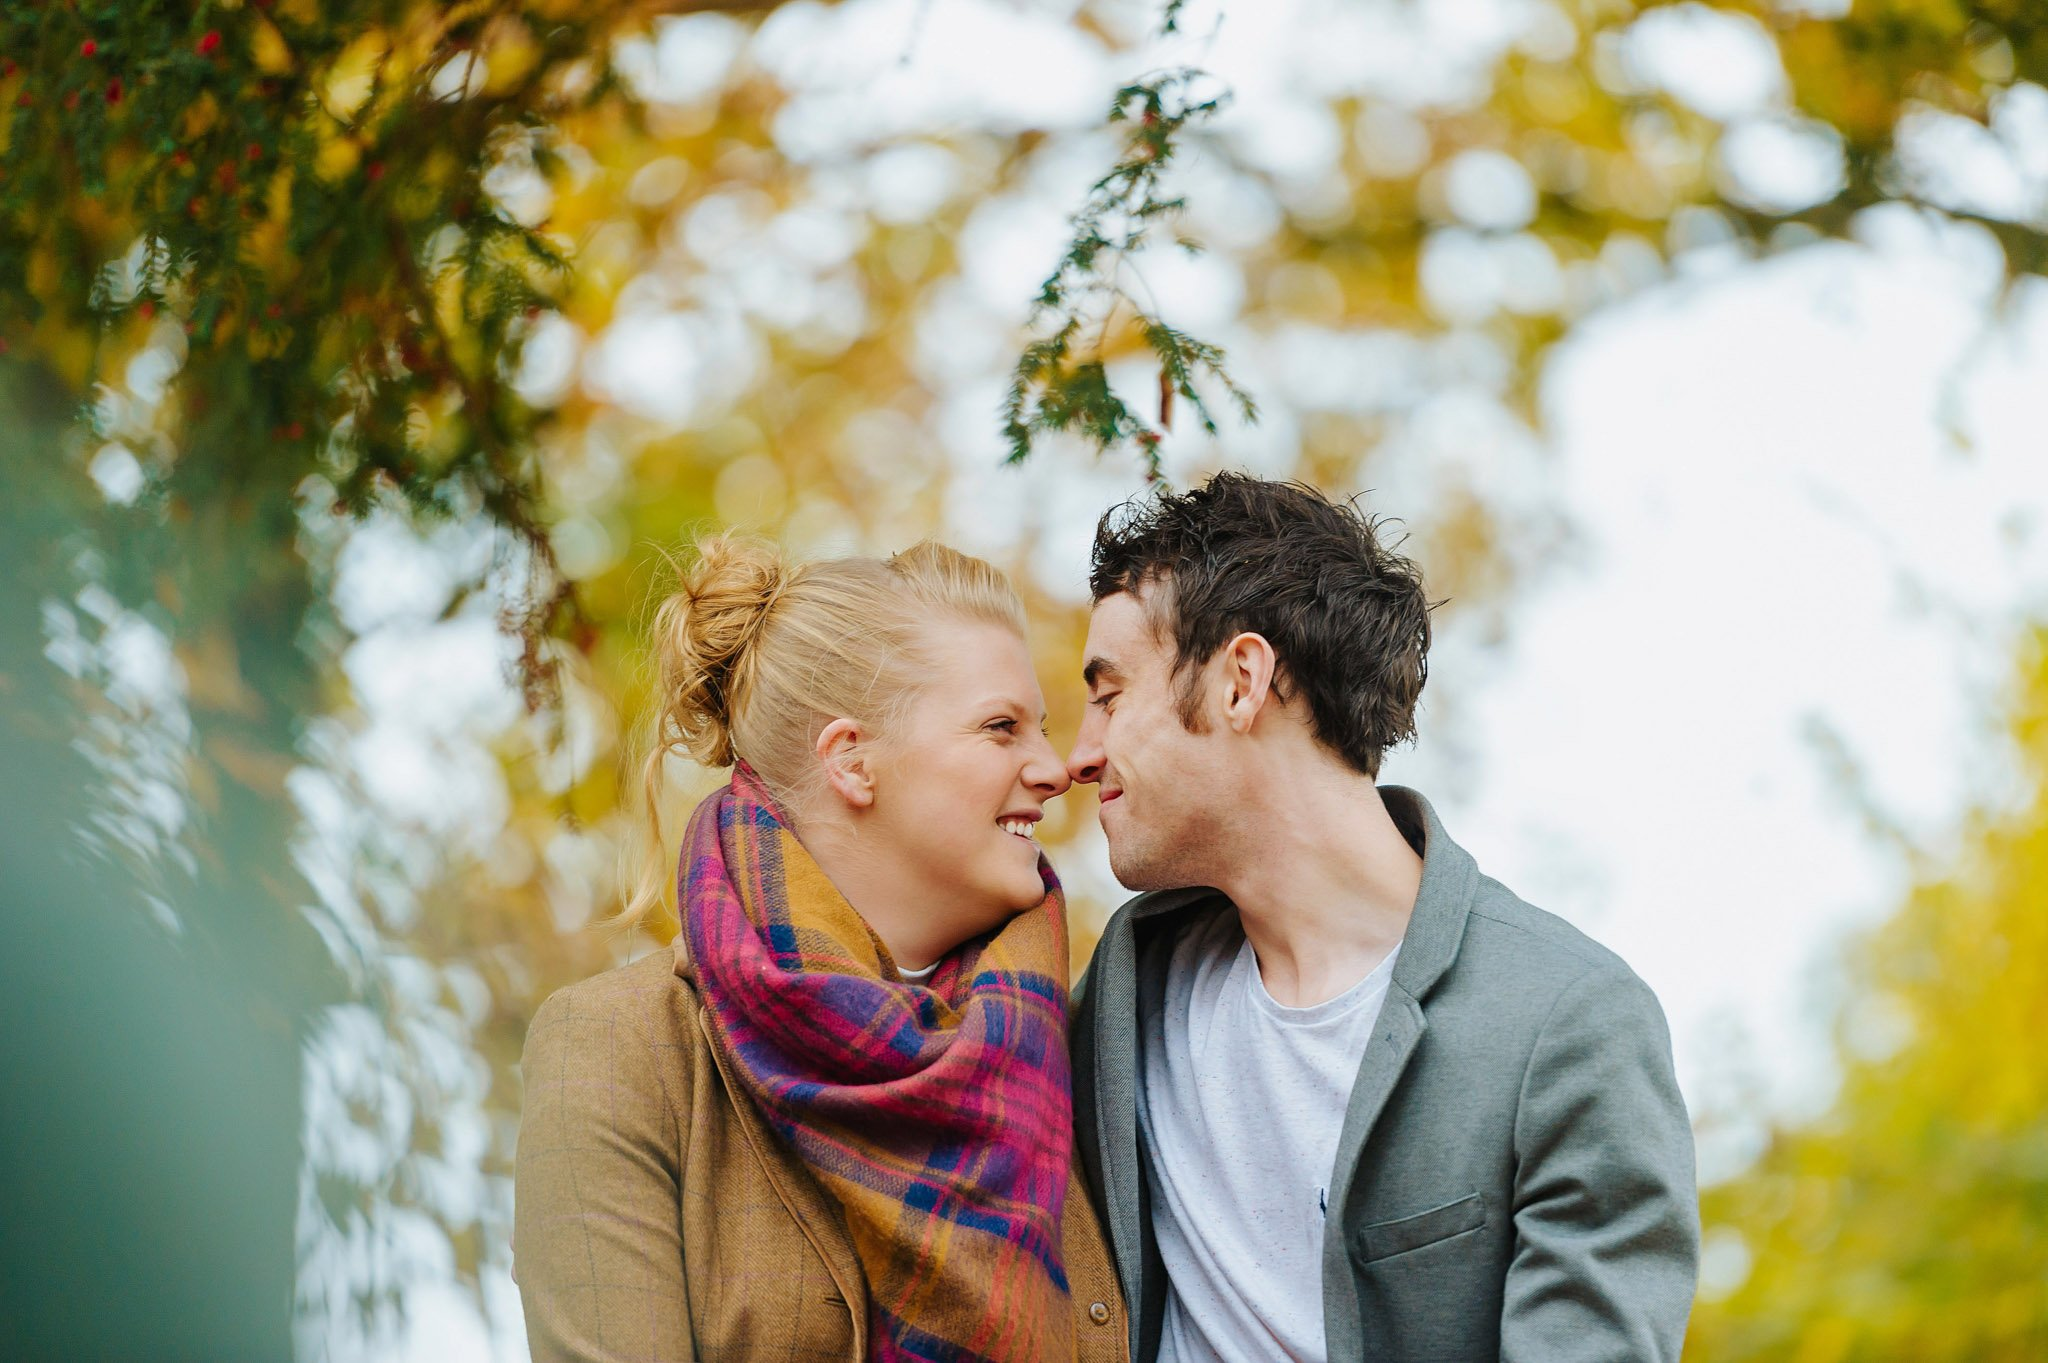 Becky + Marcus | Engagement session in Herefordshire 8